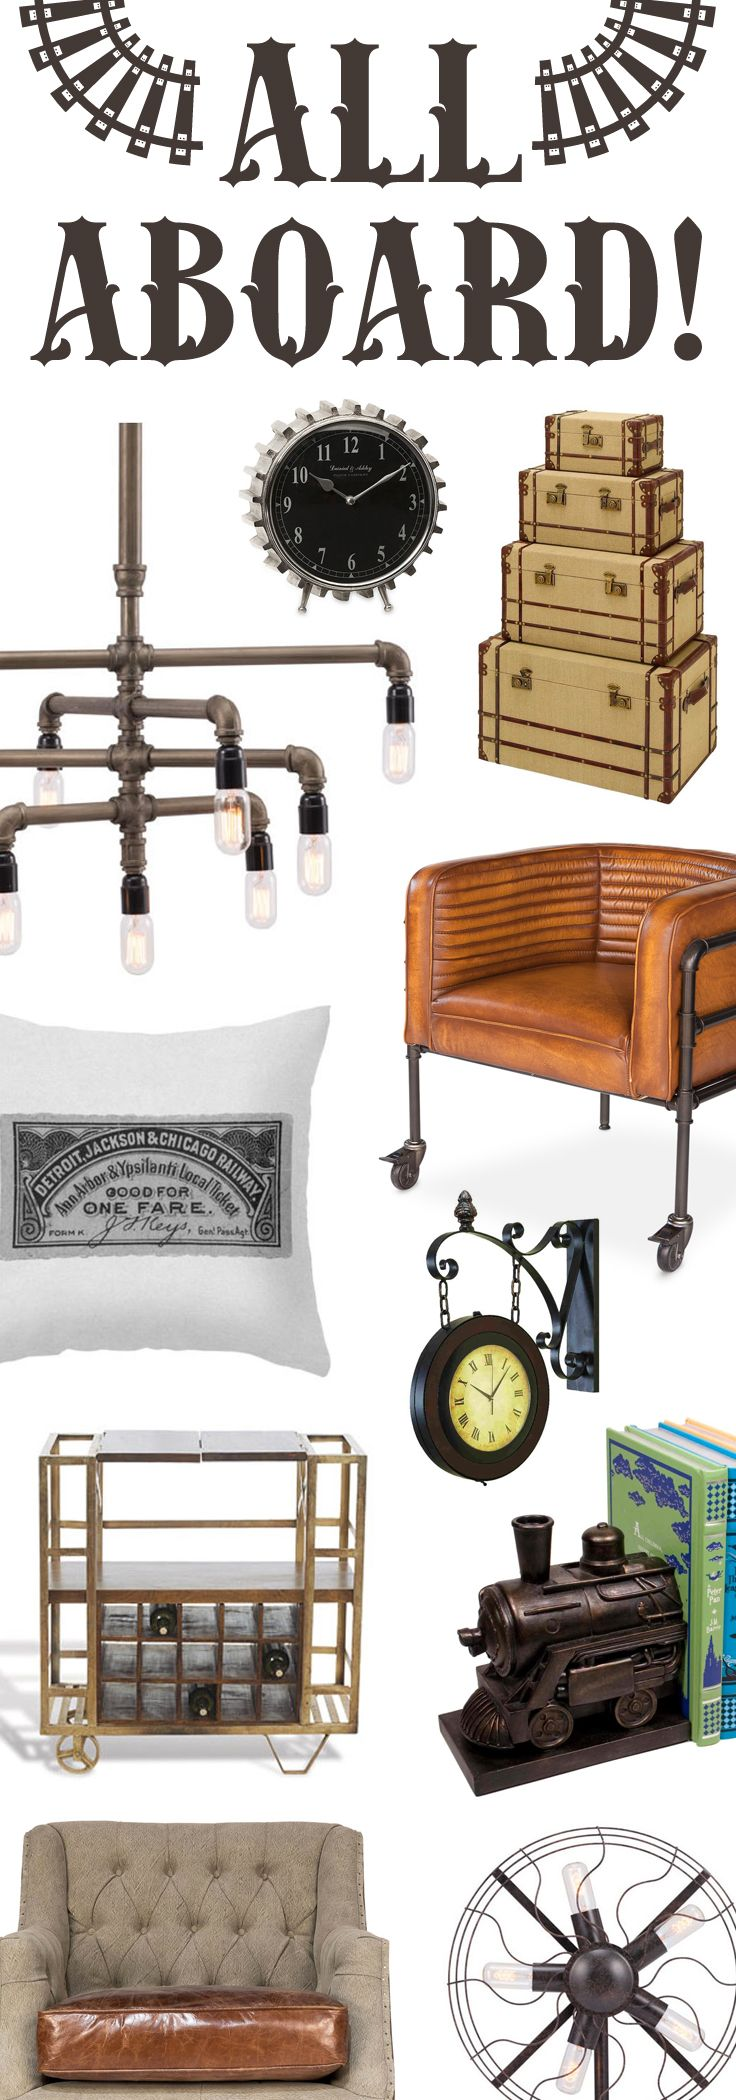 Load Up Your Home With Old-Fashioned Railroad-Inspired Designs   Up to 60% Off at dotandbo.com